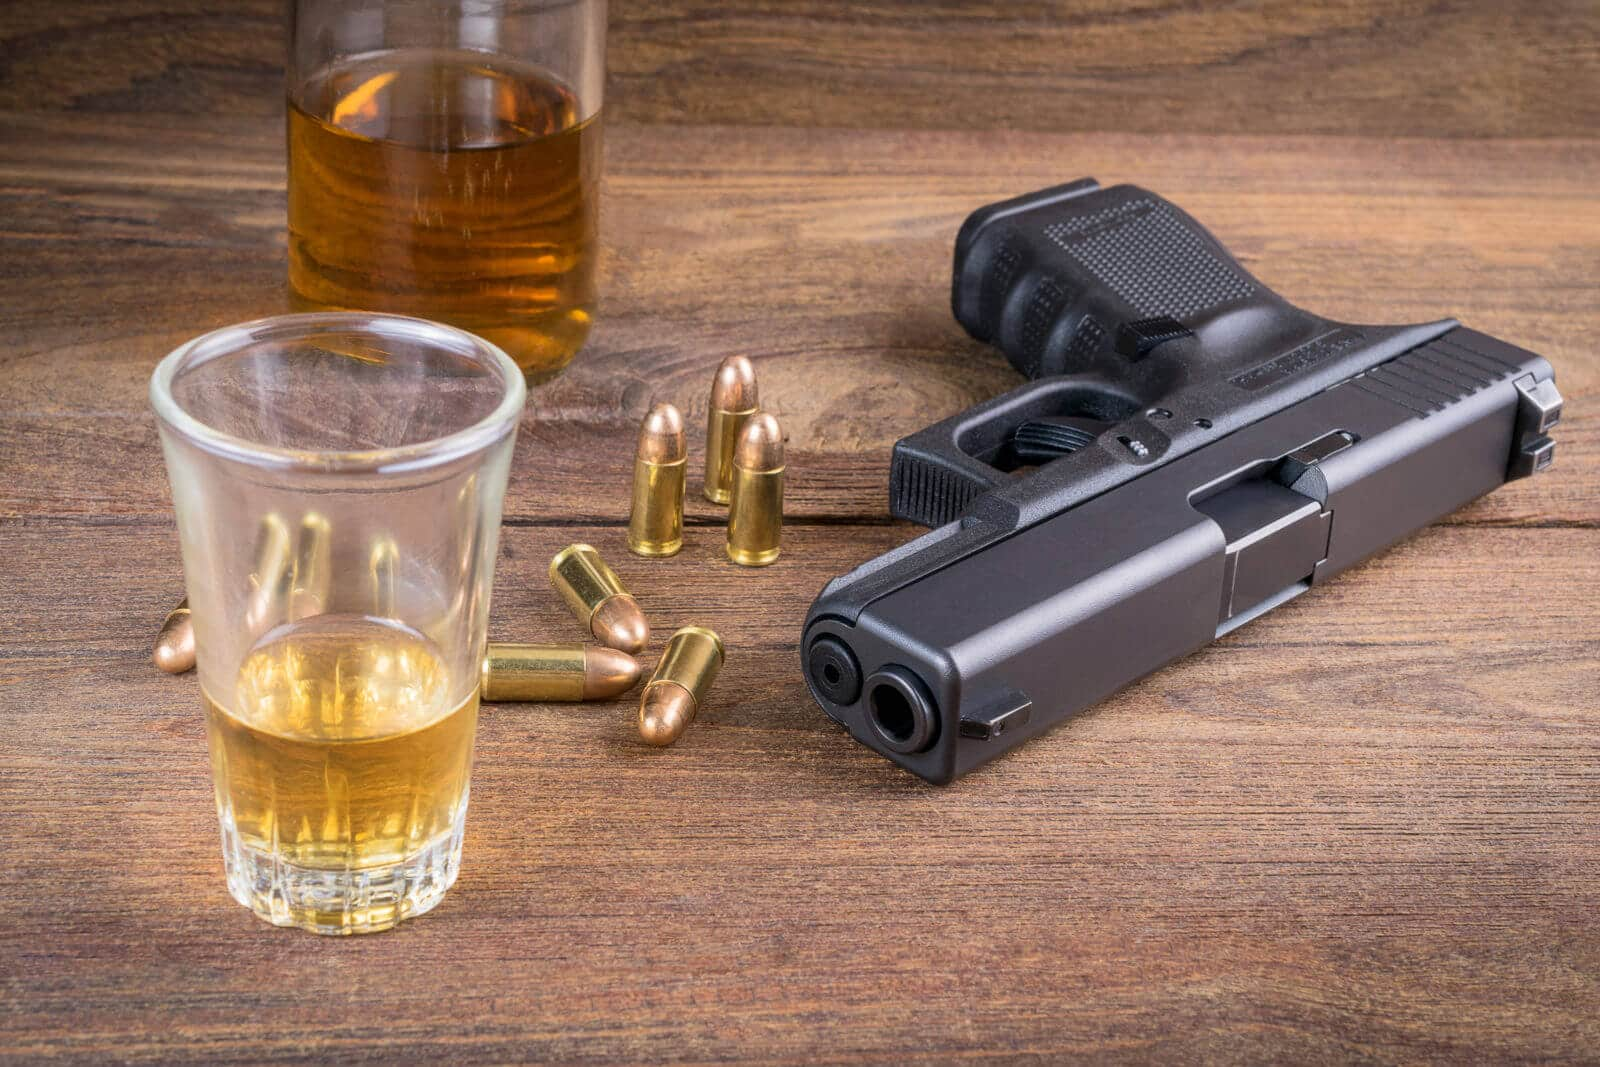 Thumbnail of Alcohol-Related Crime